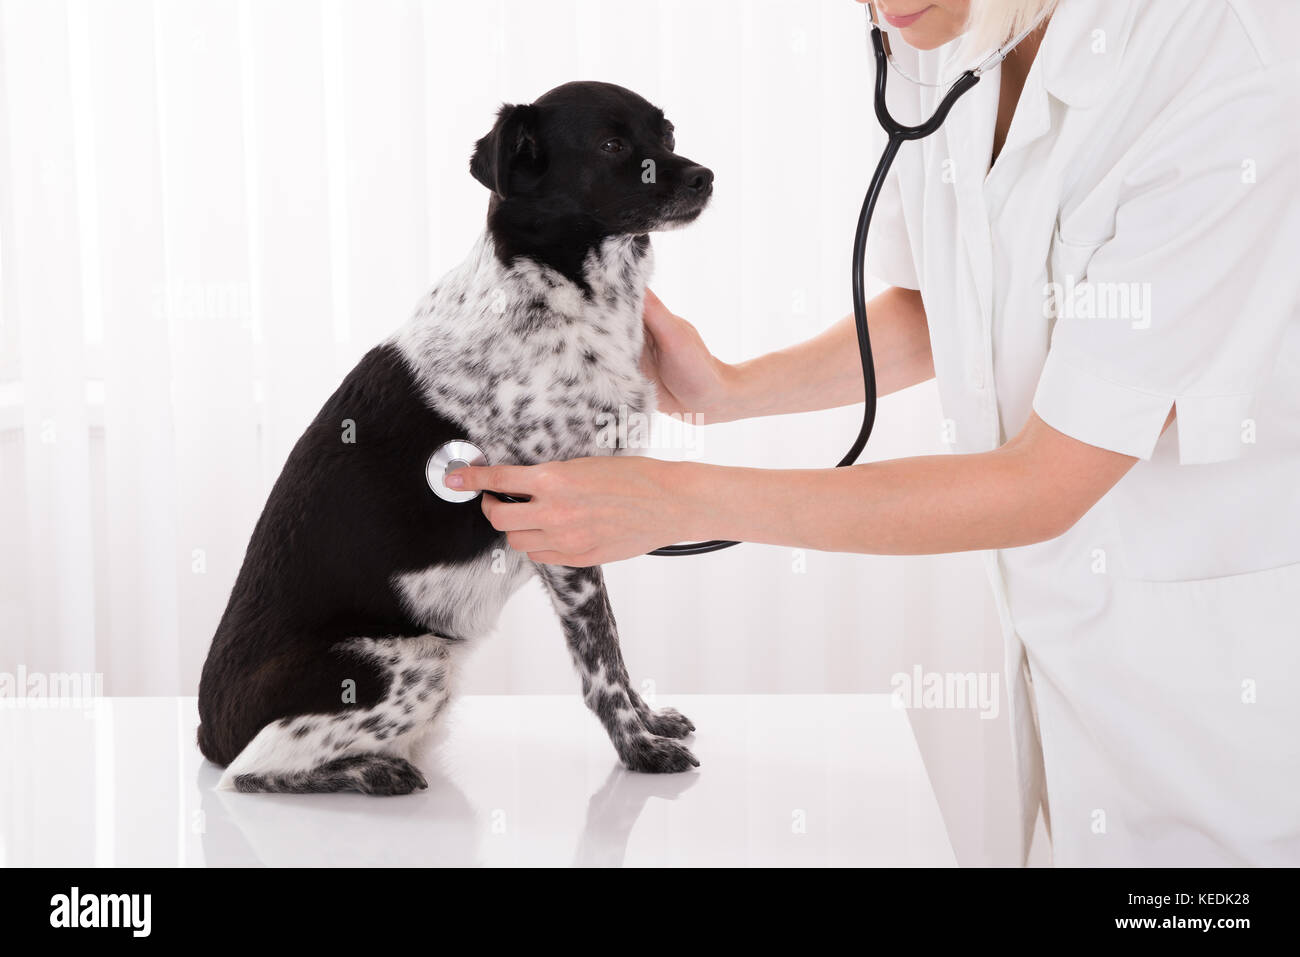 Close-up Of Vet Examining Dog With Stethoscope In Hospital - Stock Image